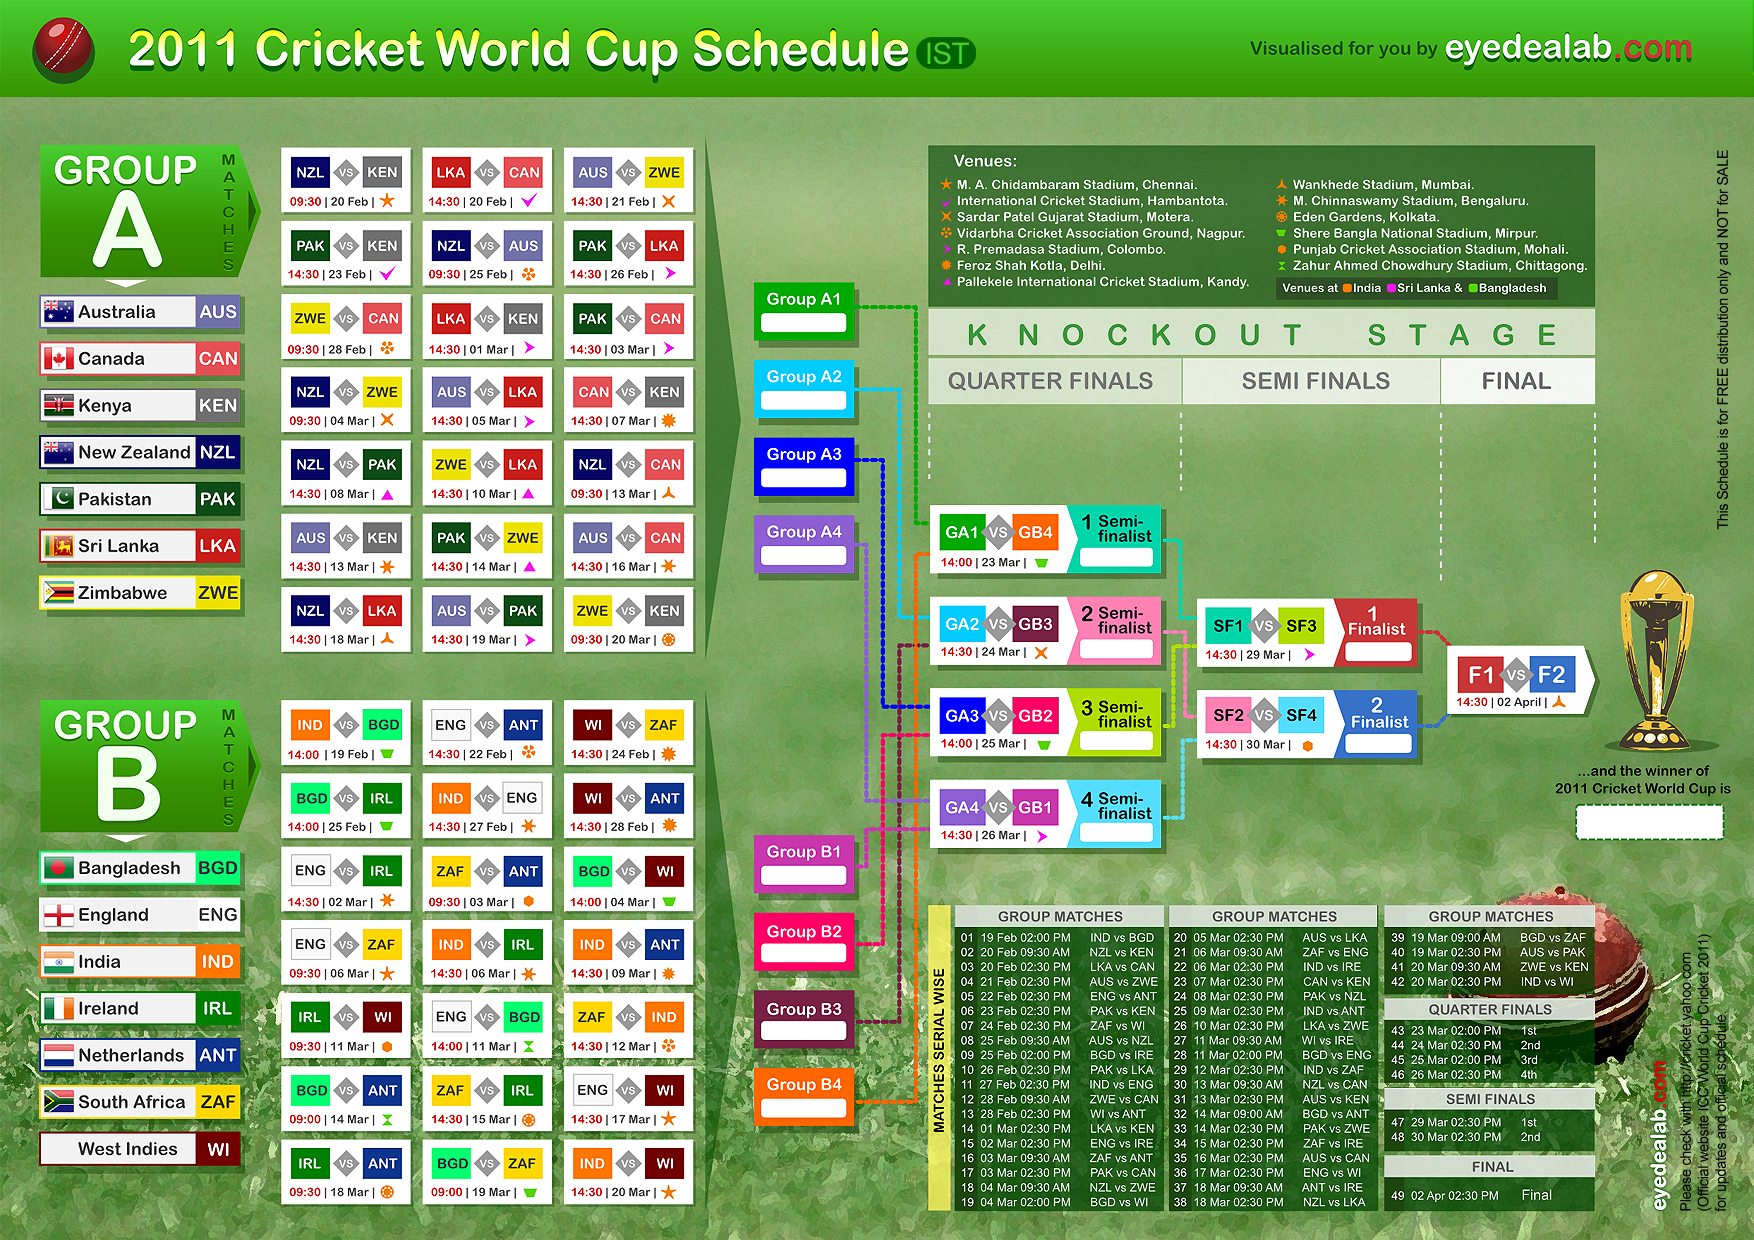 Icc Cricket World Cup 2015 Fixture Gif | Search Results | Calendar ...